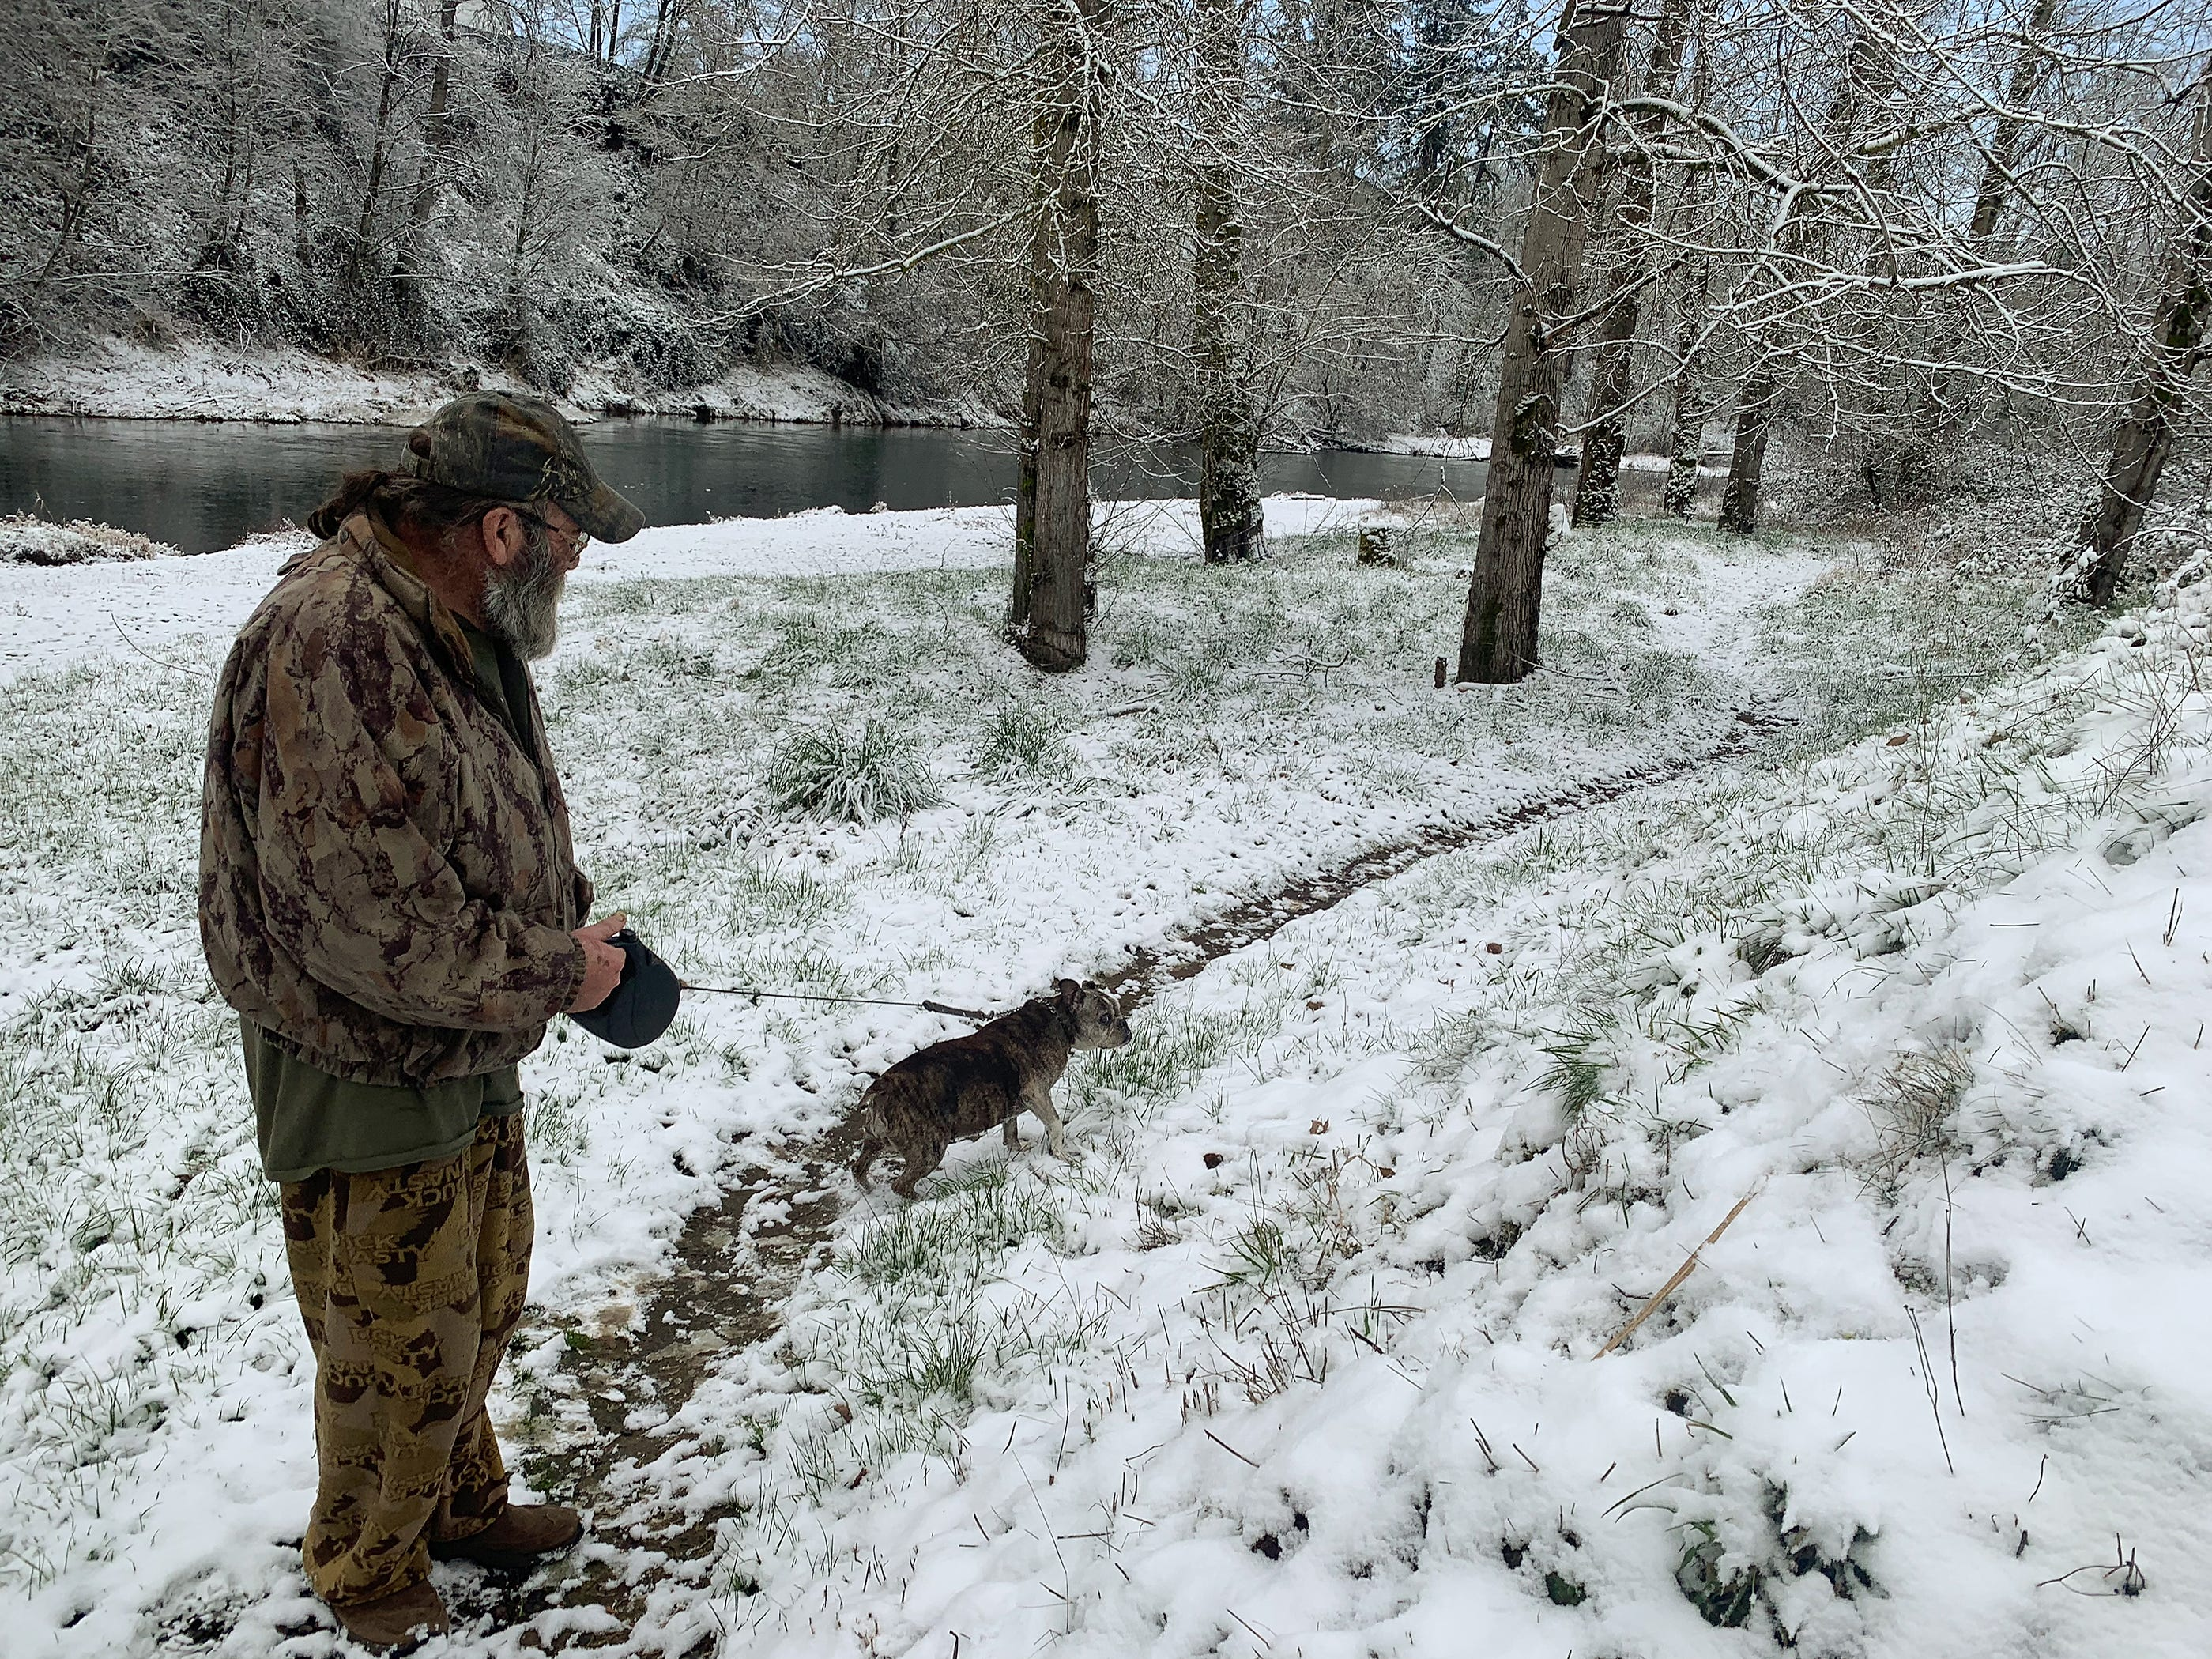 A Canby resident (who asked not to be identified) walks his dog along the Molalla River as snow covers much of the mid-Willamette valley Tuesday morning. Snow covered cars, trees and yard ornaments greeted residents of Canby, Oregon Tuesday February 5, 2019.